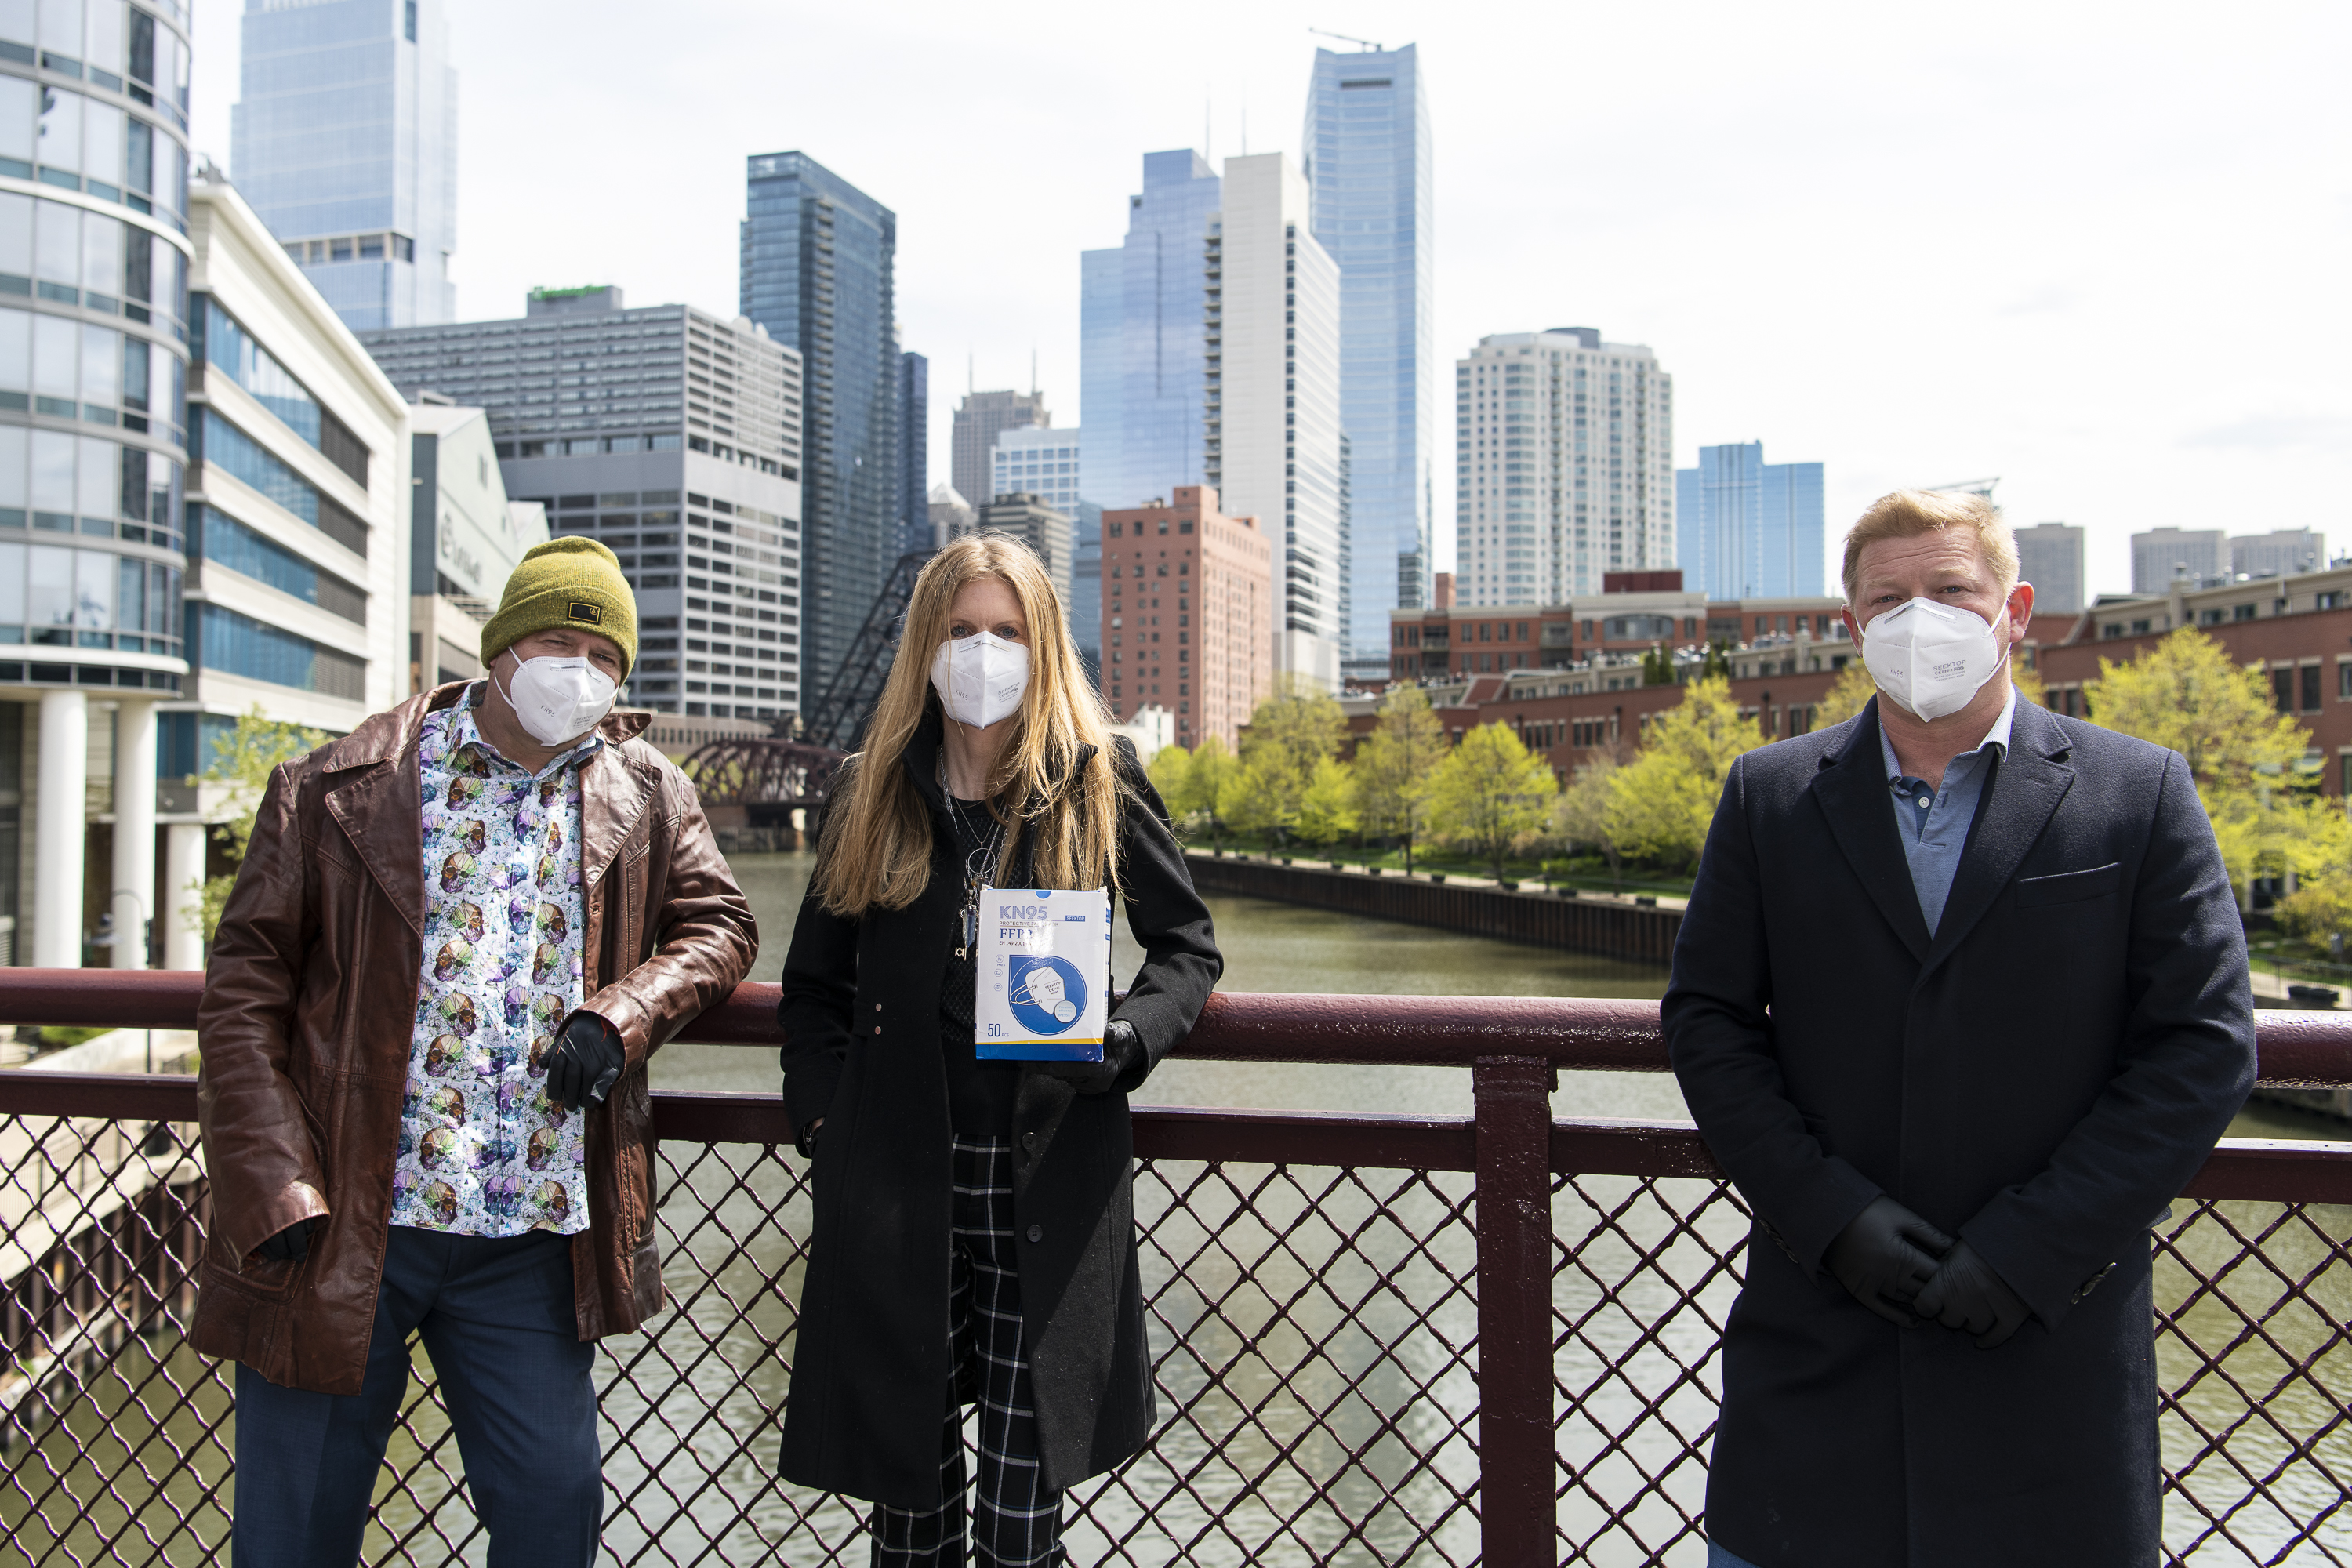 John Kucera, left, Kristi Dunn Kucera, center, and Steve Sannikov all with TellUs Global Solutions stand together with a box of N95 masks.